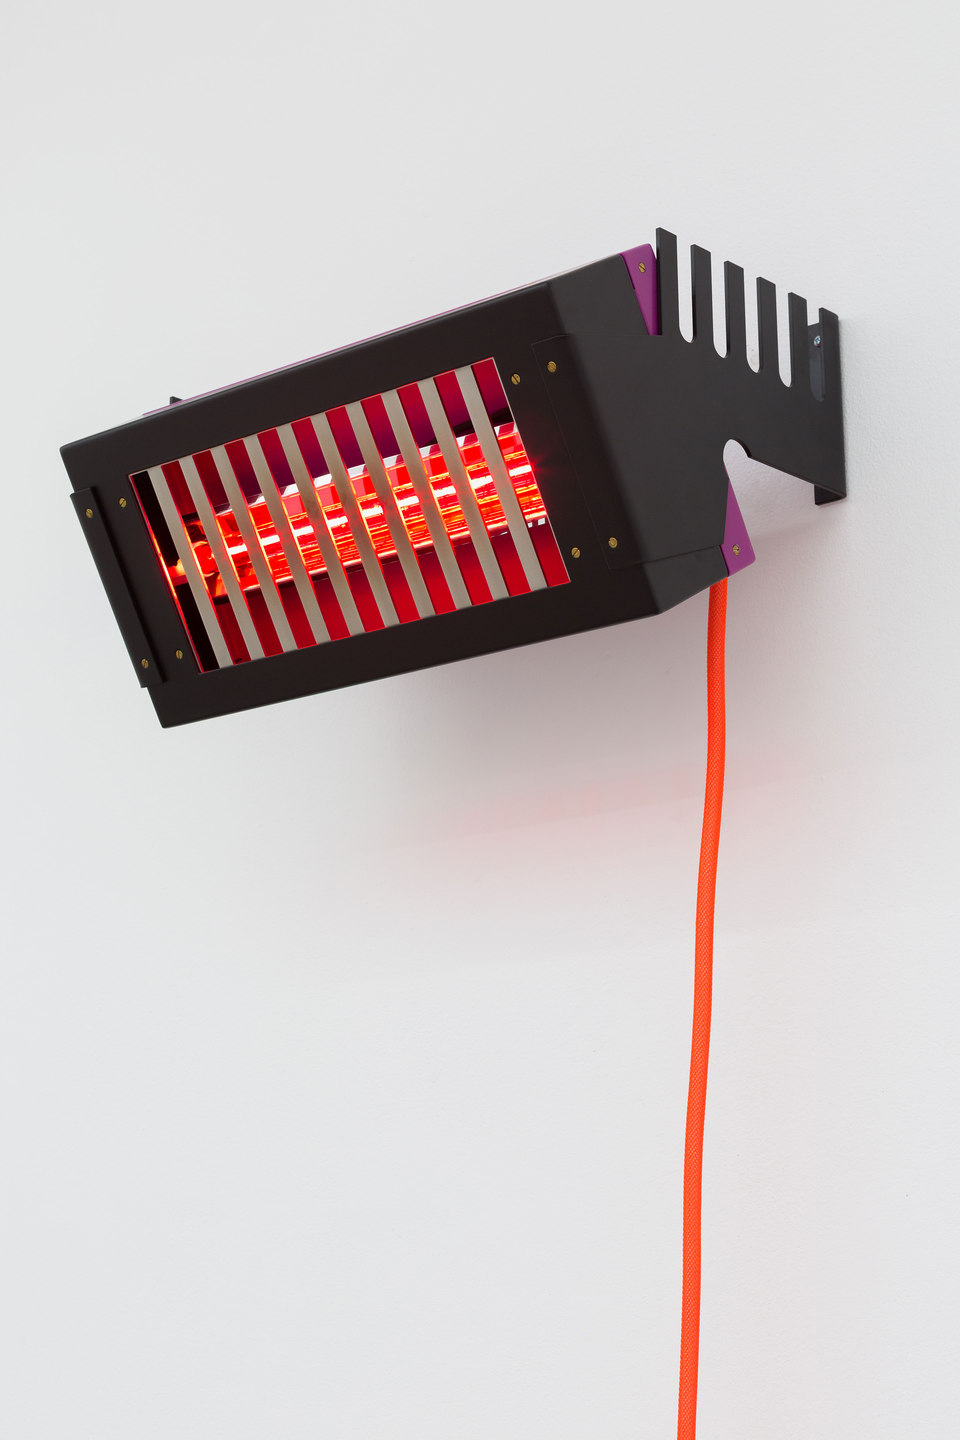 Natalie Dray, DRAY, 'Infrared Fuchsia', 2015, Cell Project Space